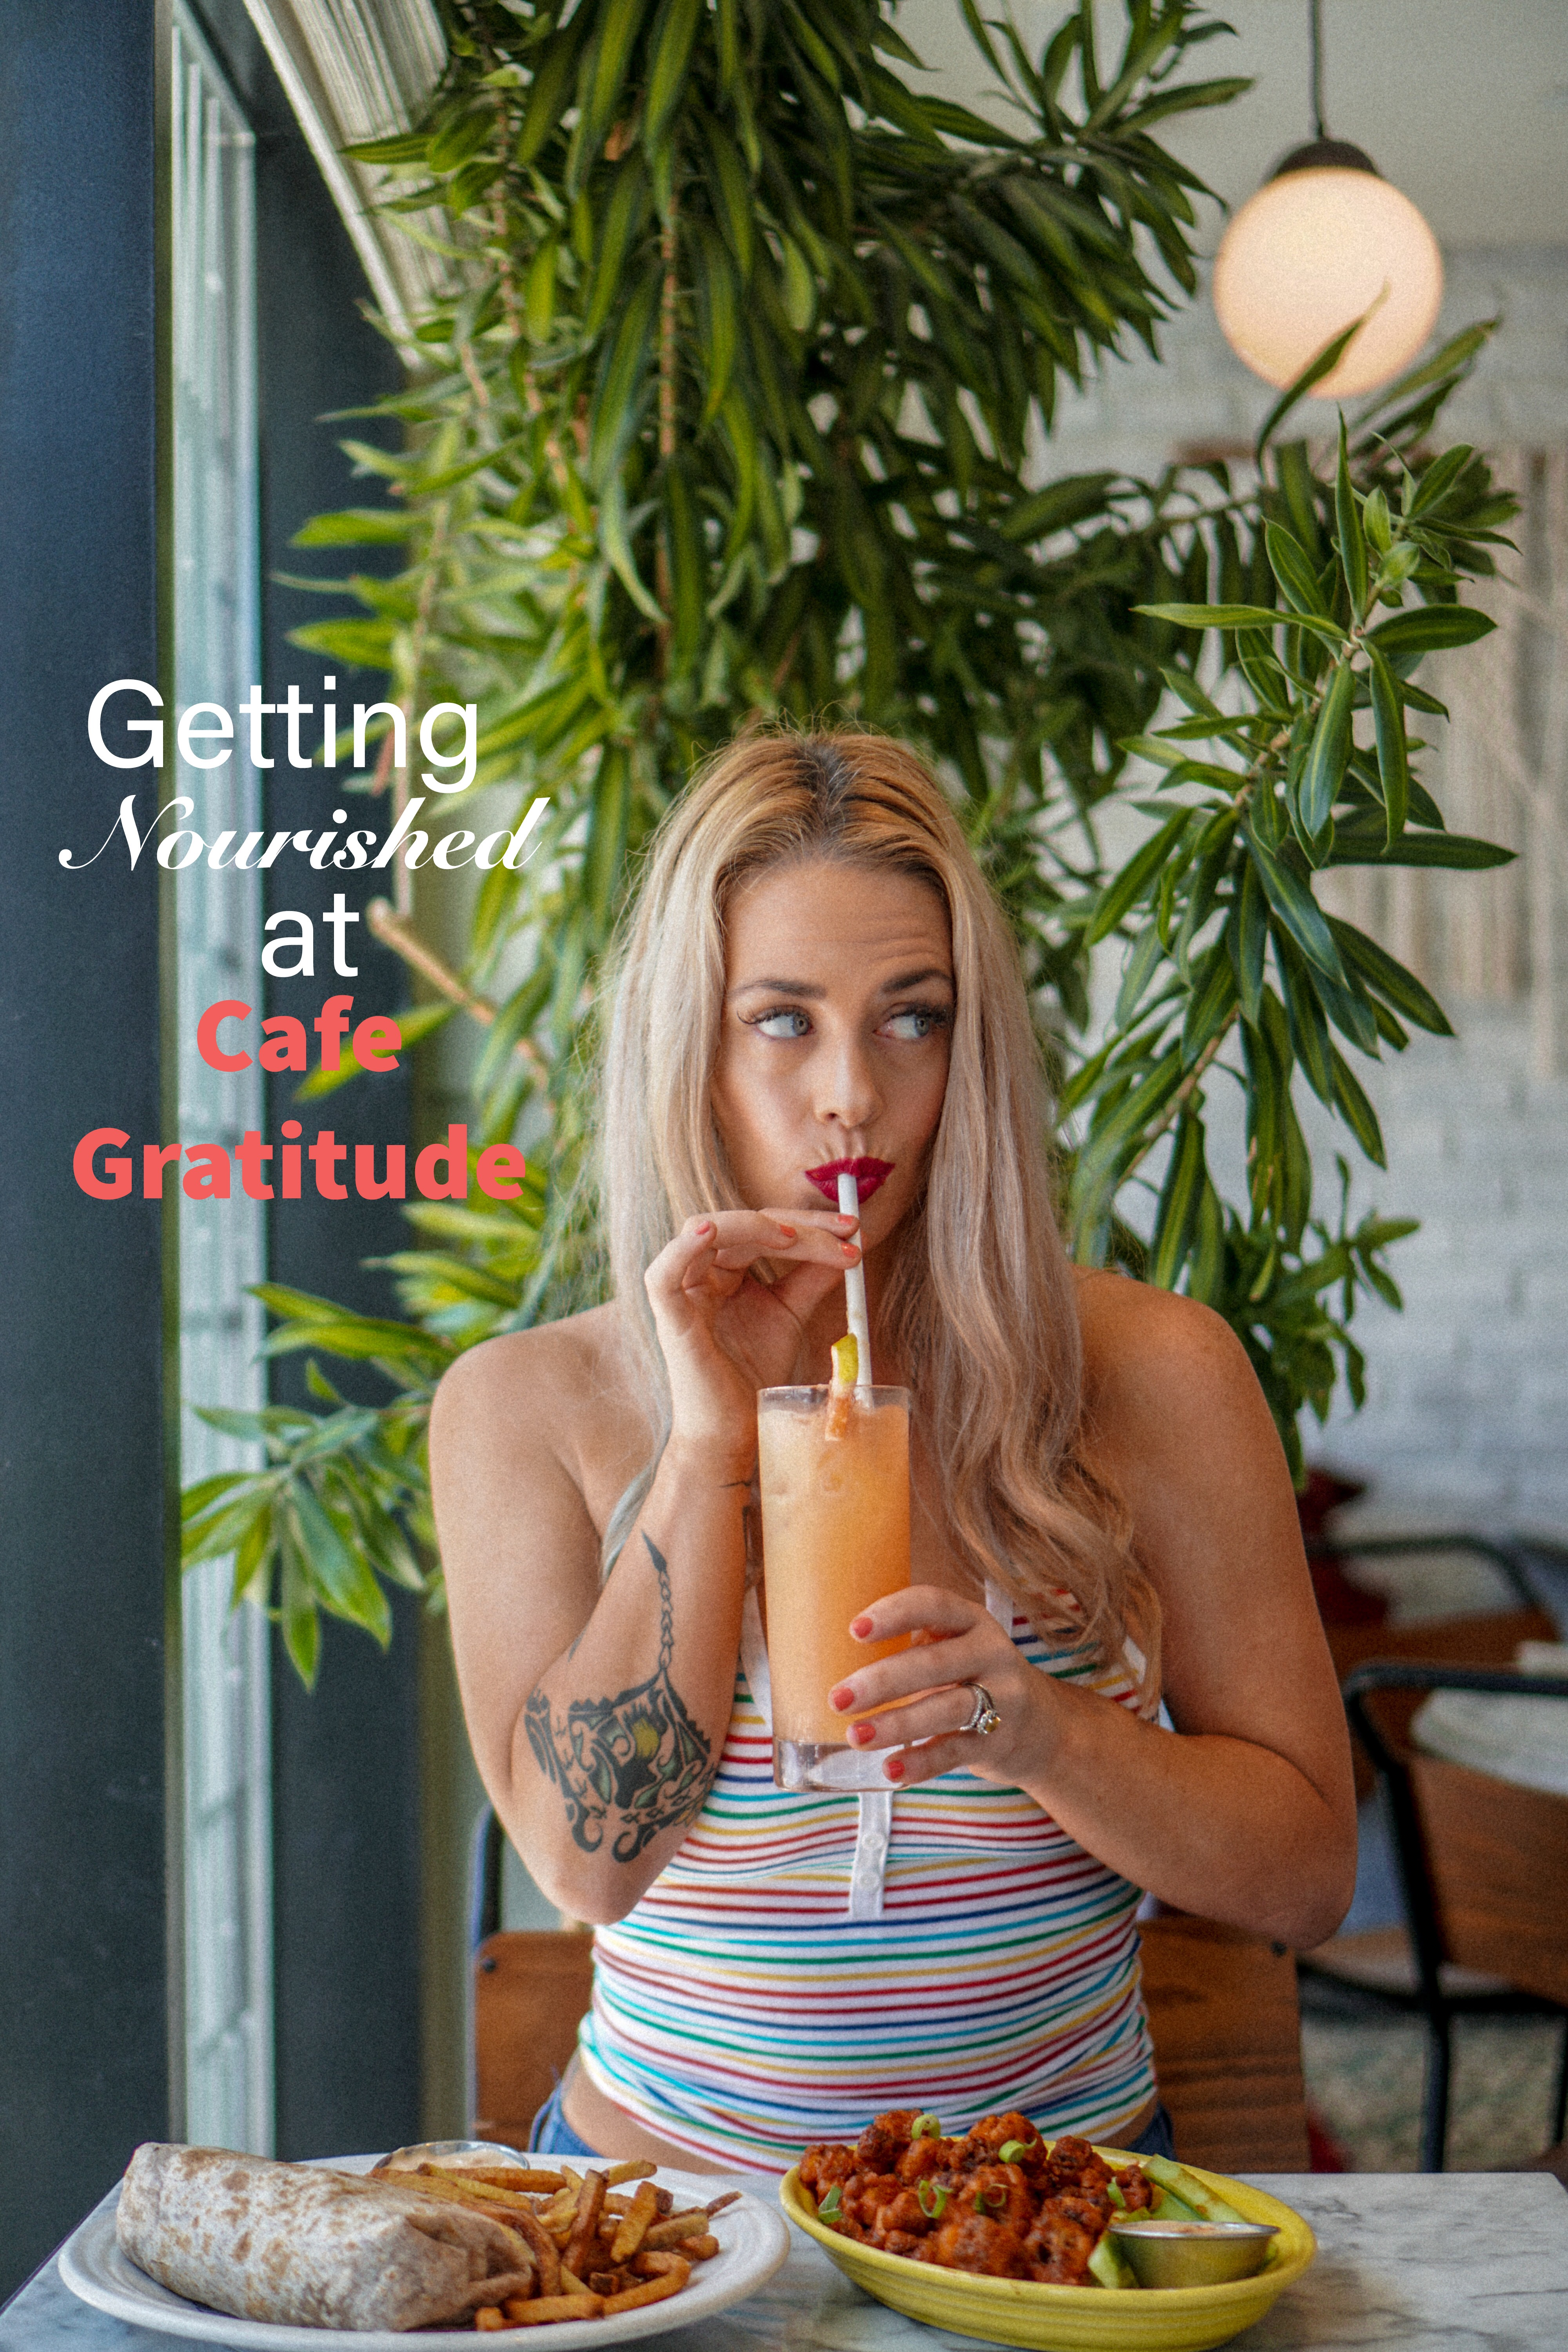 Getting Nourished at Cafe Gratitude